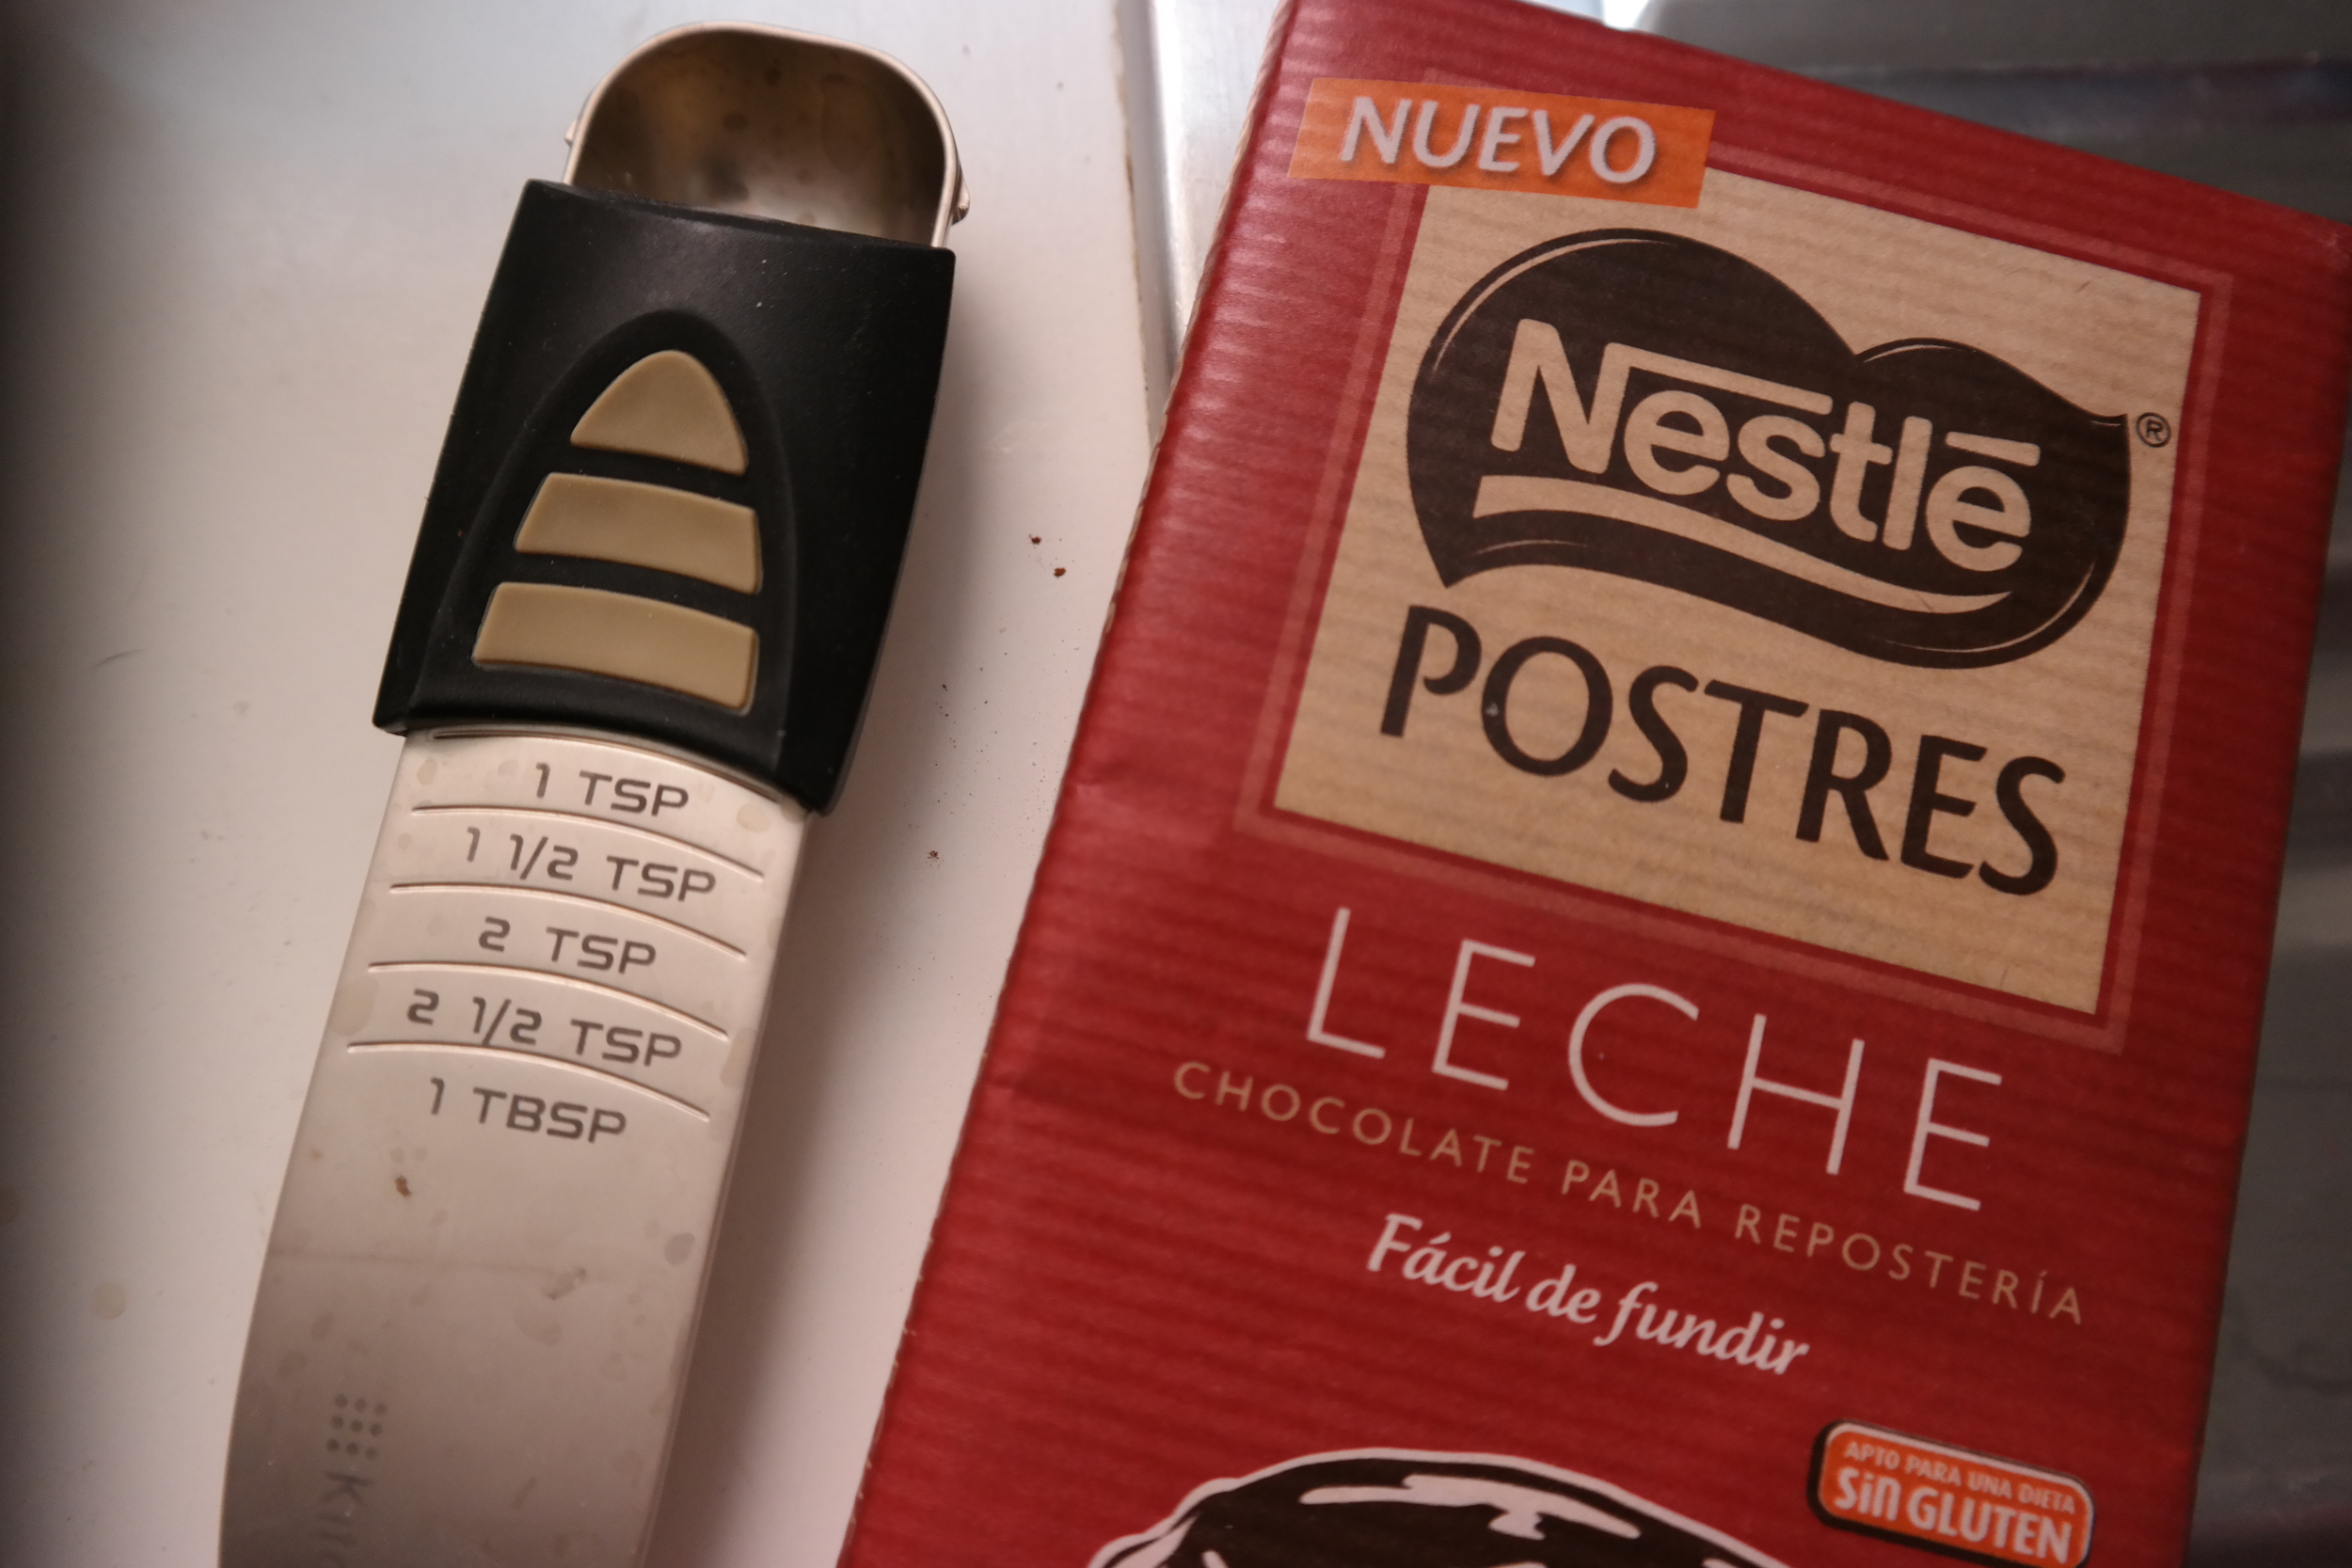 """I didn't end up using this chocolate for the icing, which I'd originally intended to do (I skipped the icing part), but I know some of you like seeing products here so I included it. This is milk chocolate for baking, """"Easy to Melt."""" Also, I'm SO glad I remembered to bring this multi-measurement measuring spoon, because measurements are different here. Not to mention, it was compact in my luggage!"""